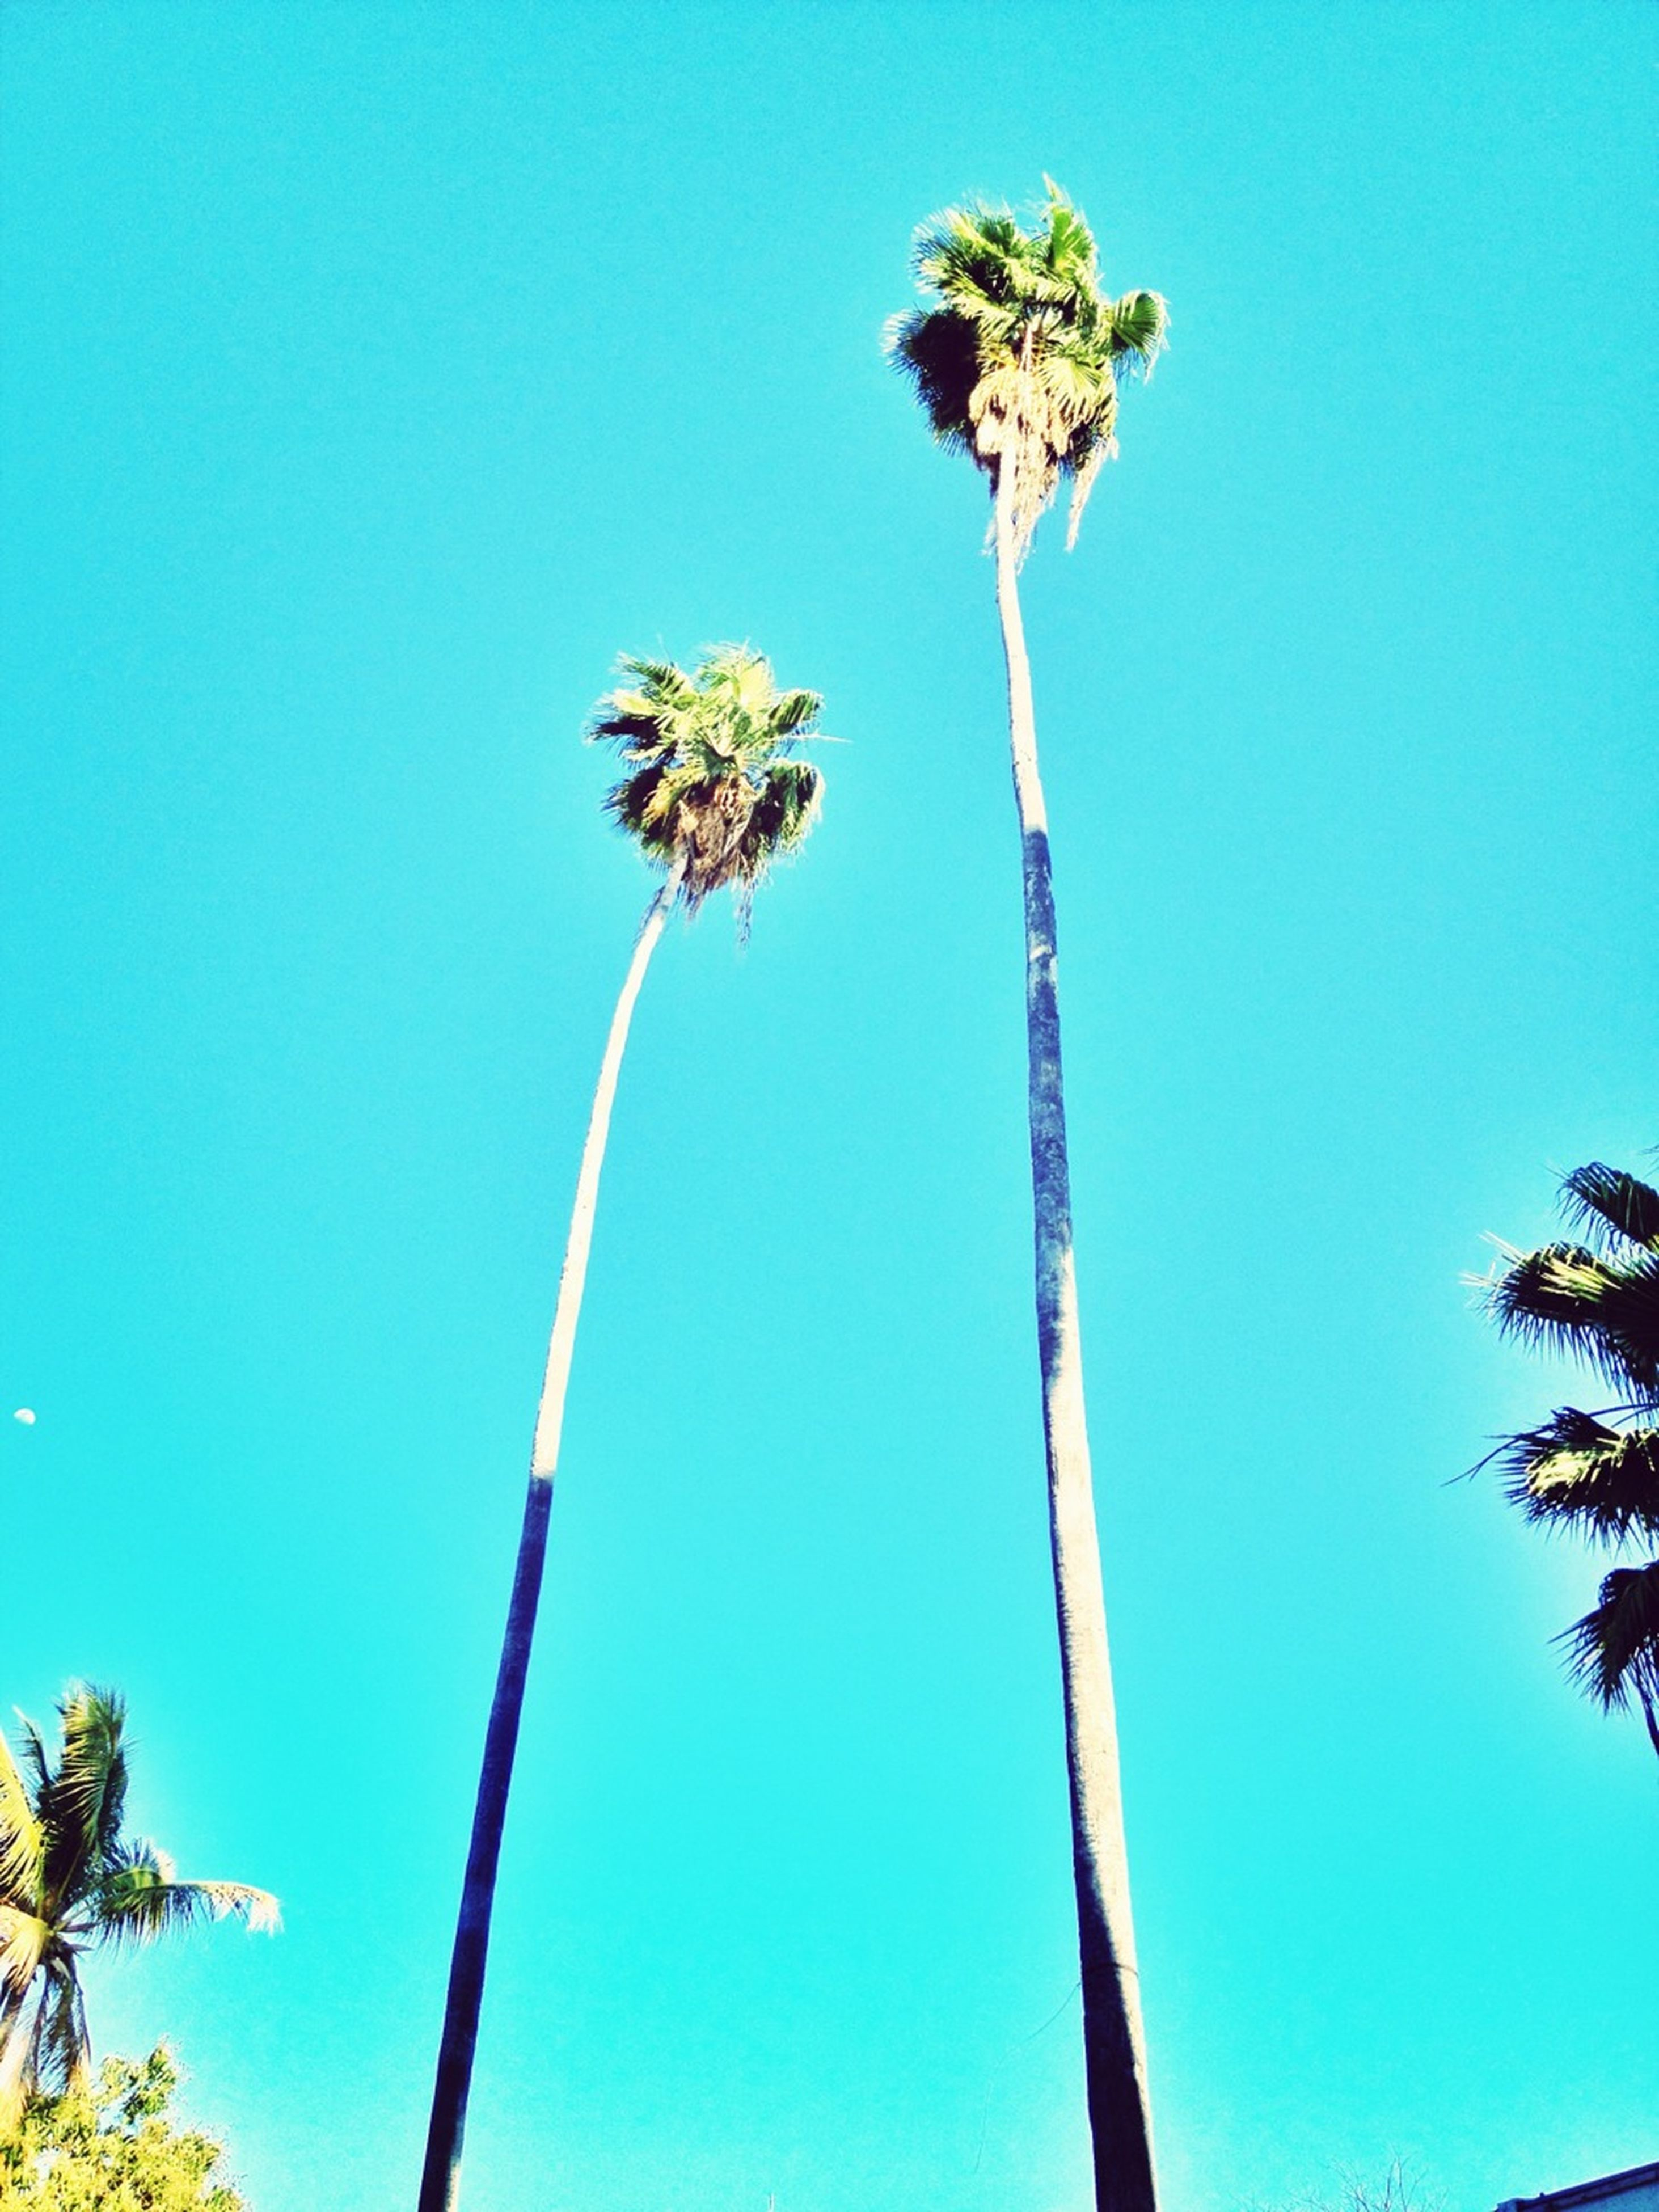 low angle view, clear sky, blue, palm tree, tree, tall - high, growth, tree trunk, copy space, nature, coconut palm tree, tranquility, beauty in nature, outdoors, no people, day, tall, branch, sky, sunlight